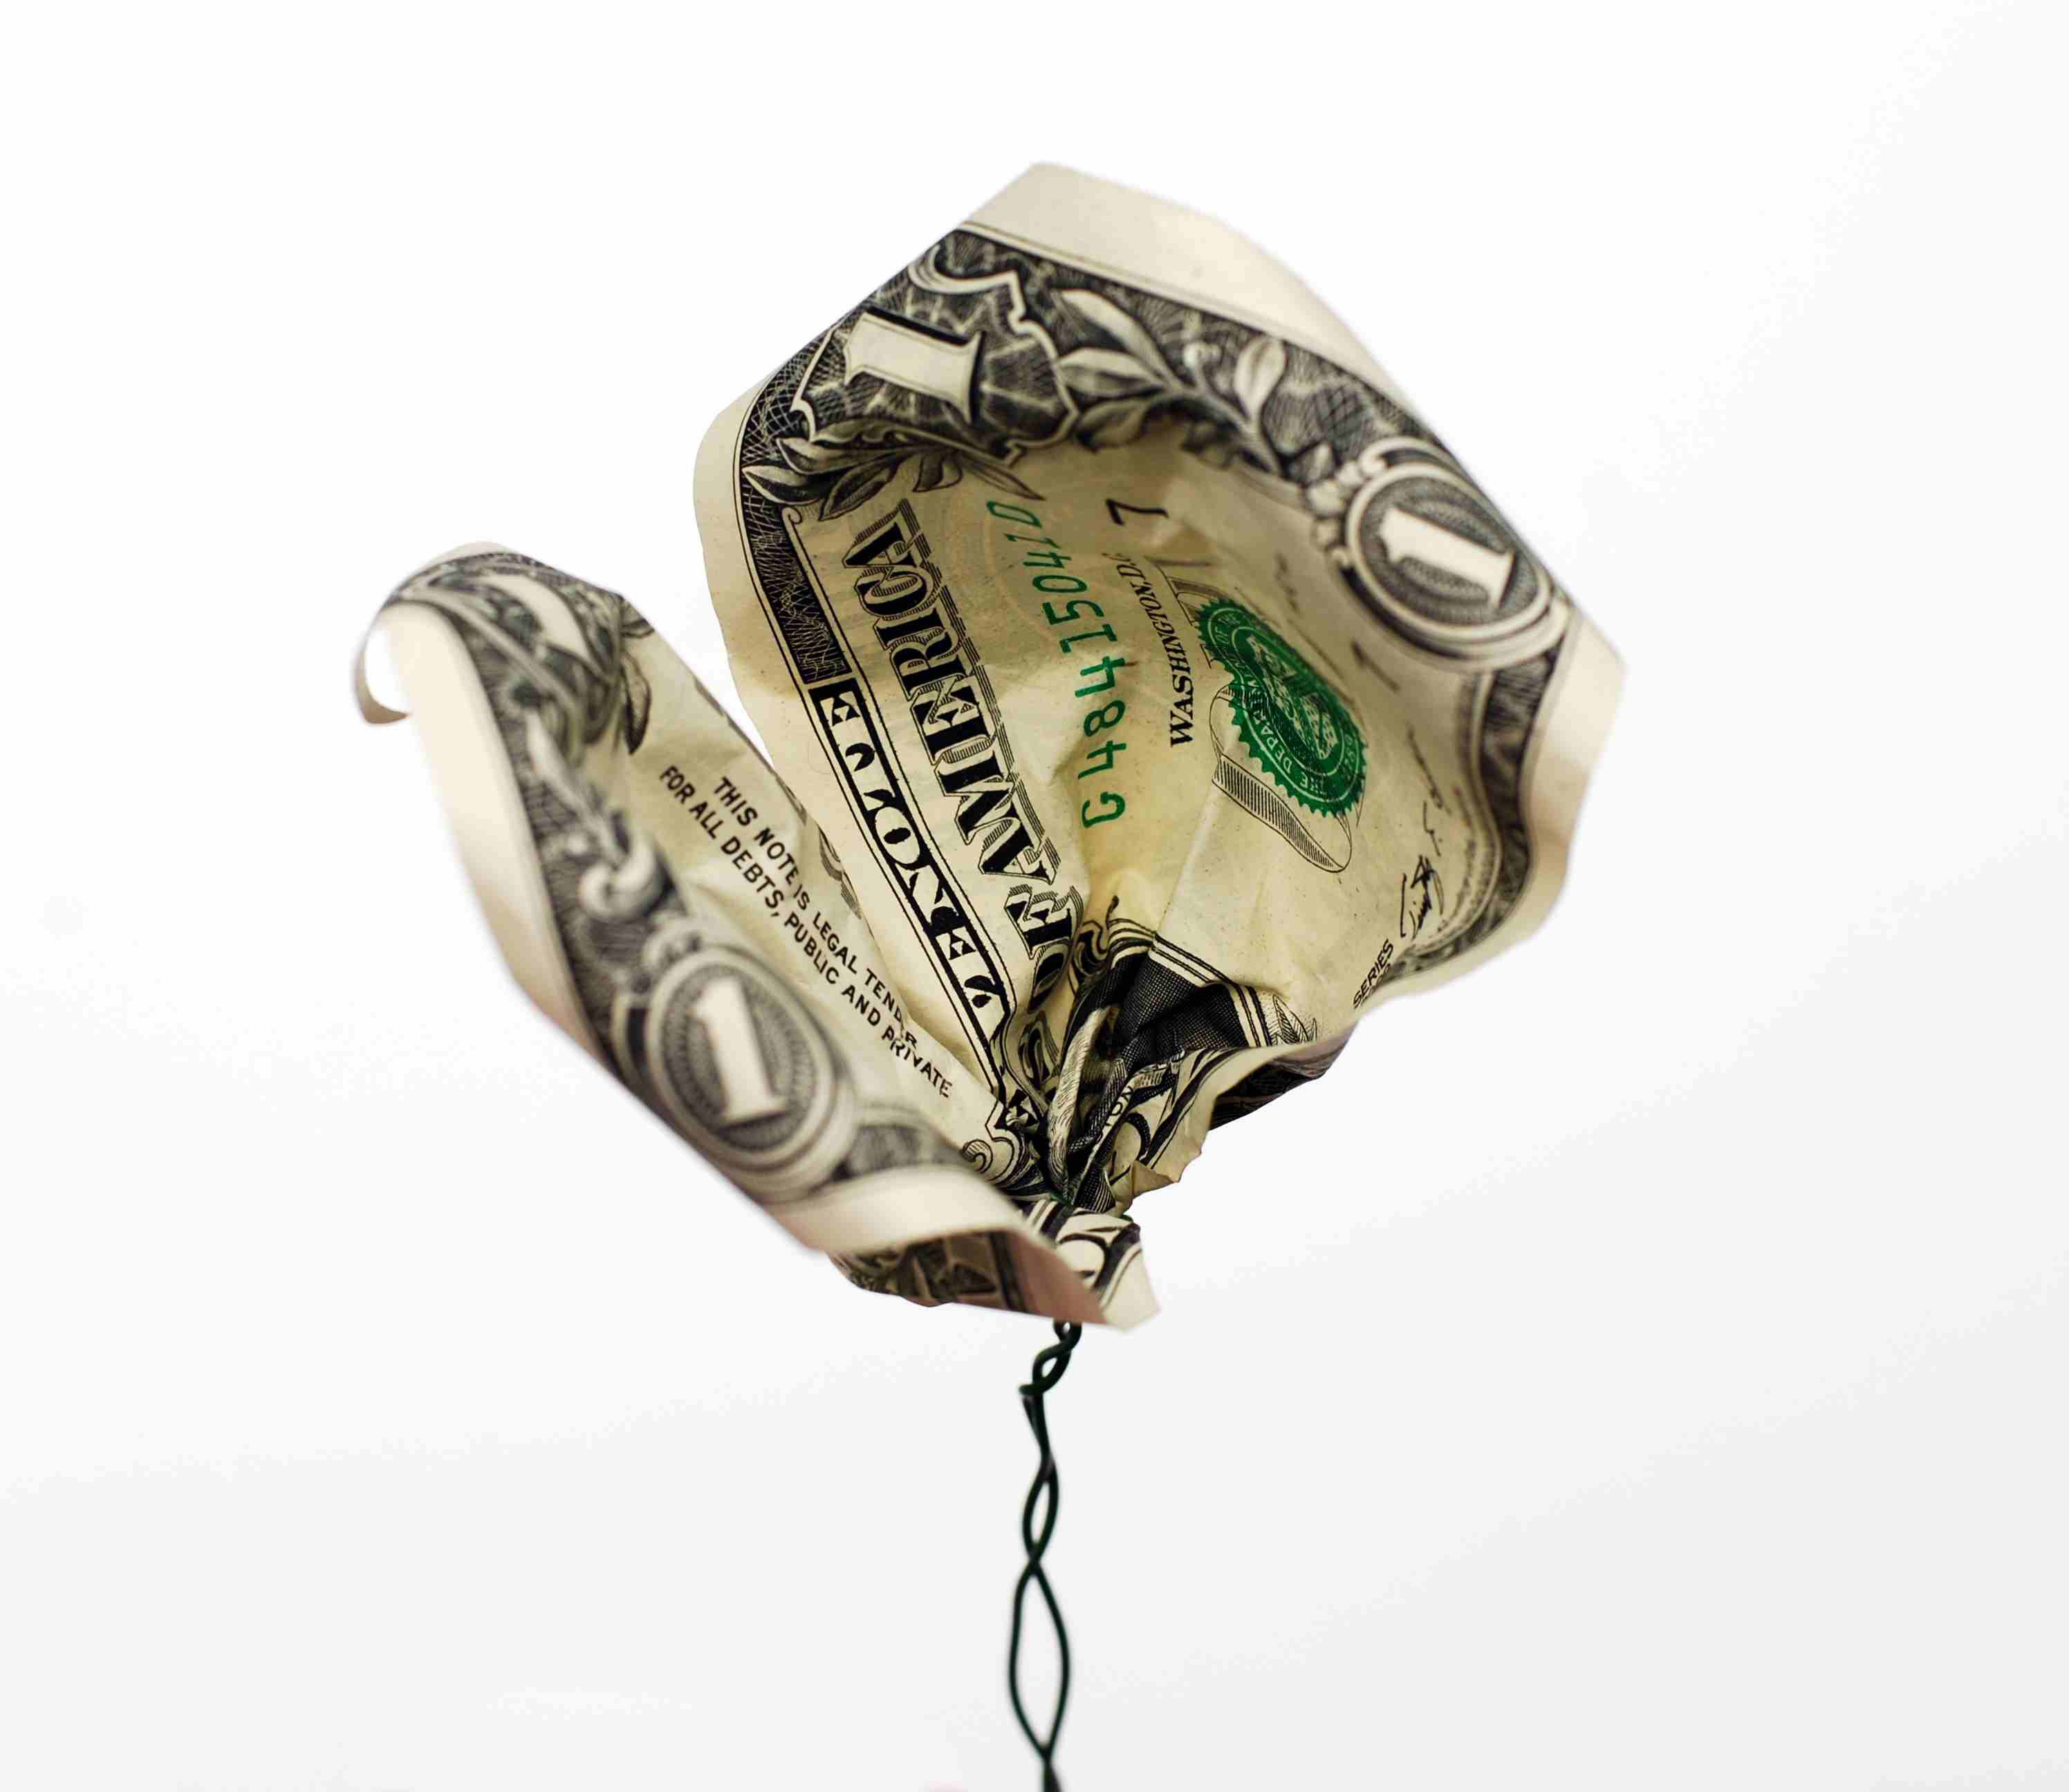 Dollar bill attached to floral wire